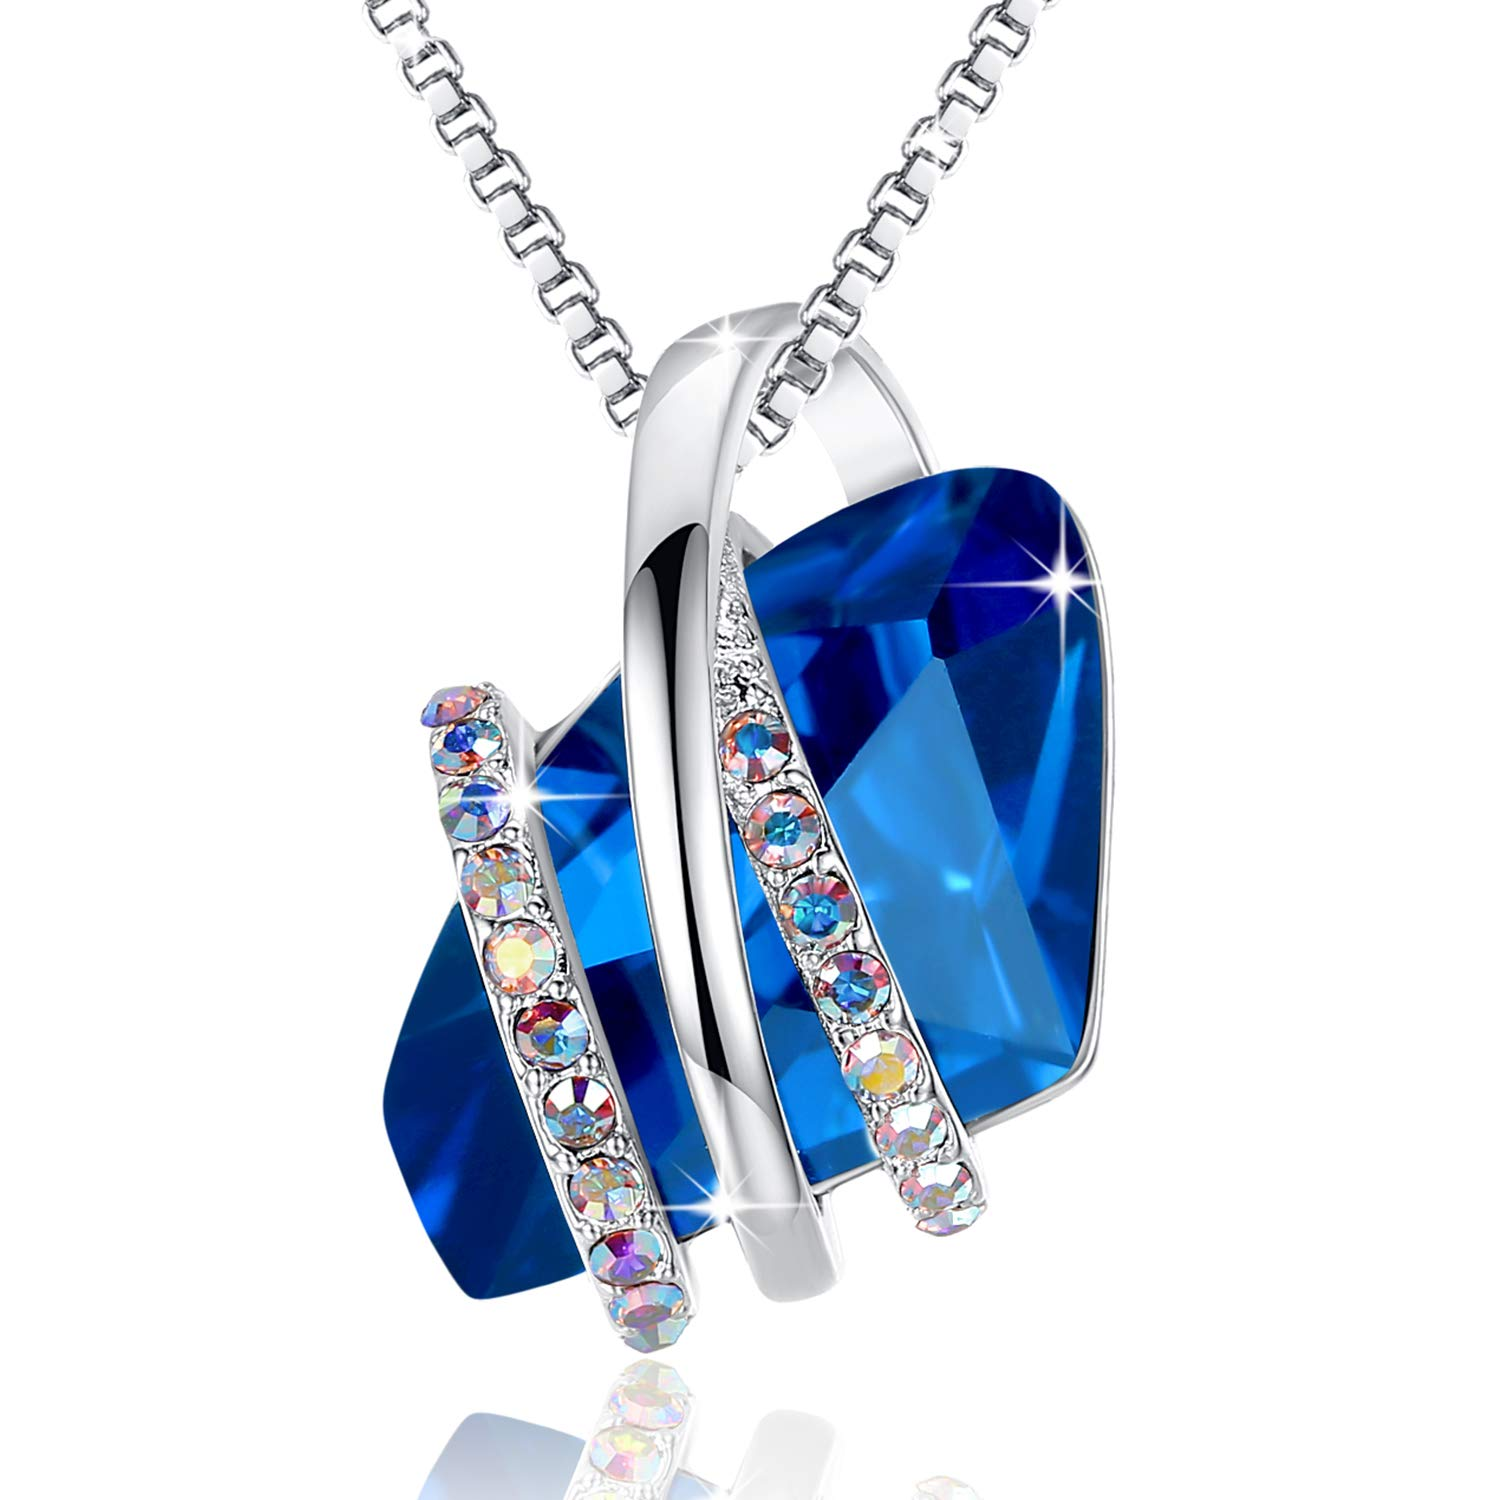 Leafael Wish Stone Pendant Necklace Made Swarovski Crystals (Sapphire Blue Silver Tone) Gifts Women Mother Daughter September Birthstone Jewelry by Leafael